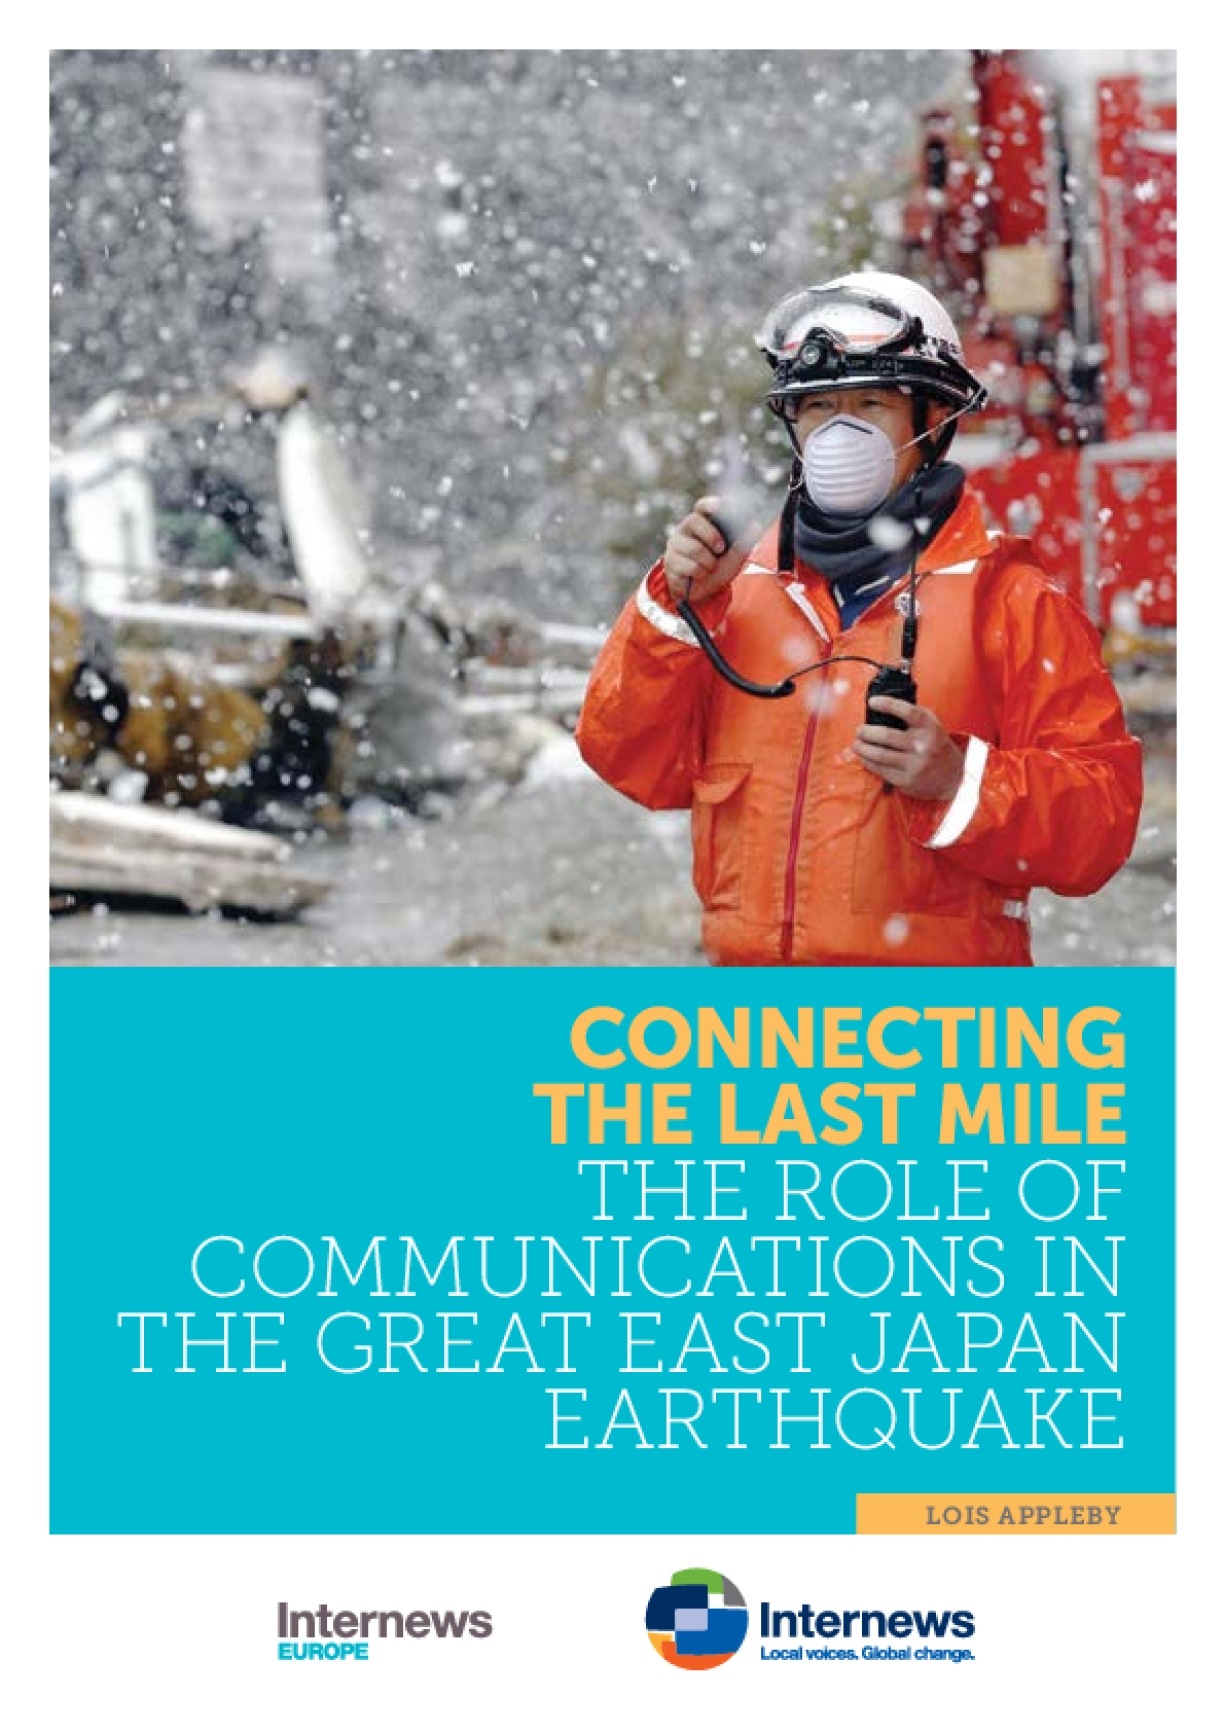 Connecting the Last Mile: The Role of Communications in the Great East Japan Earthquake